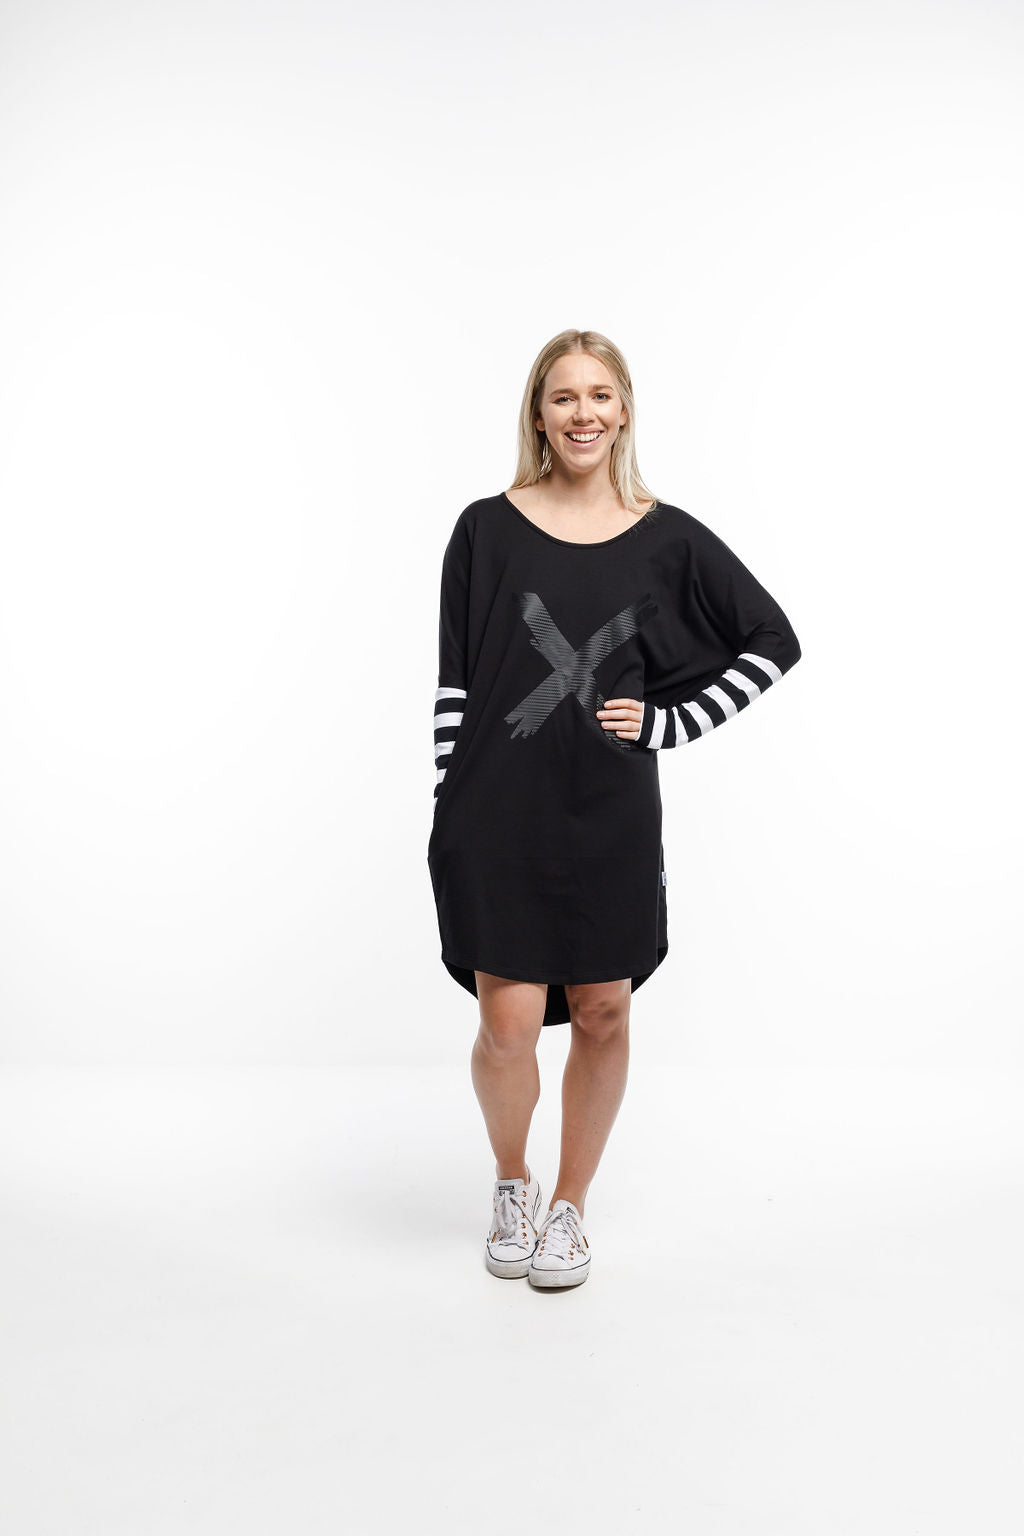 BATWING DRESS - Black with Stripes and X print